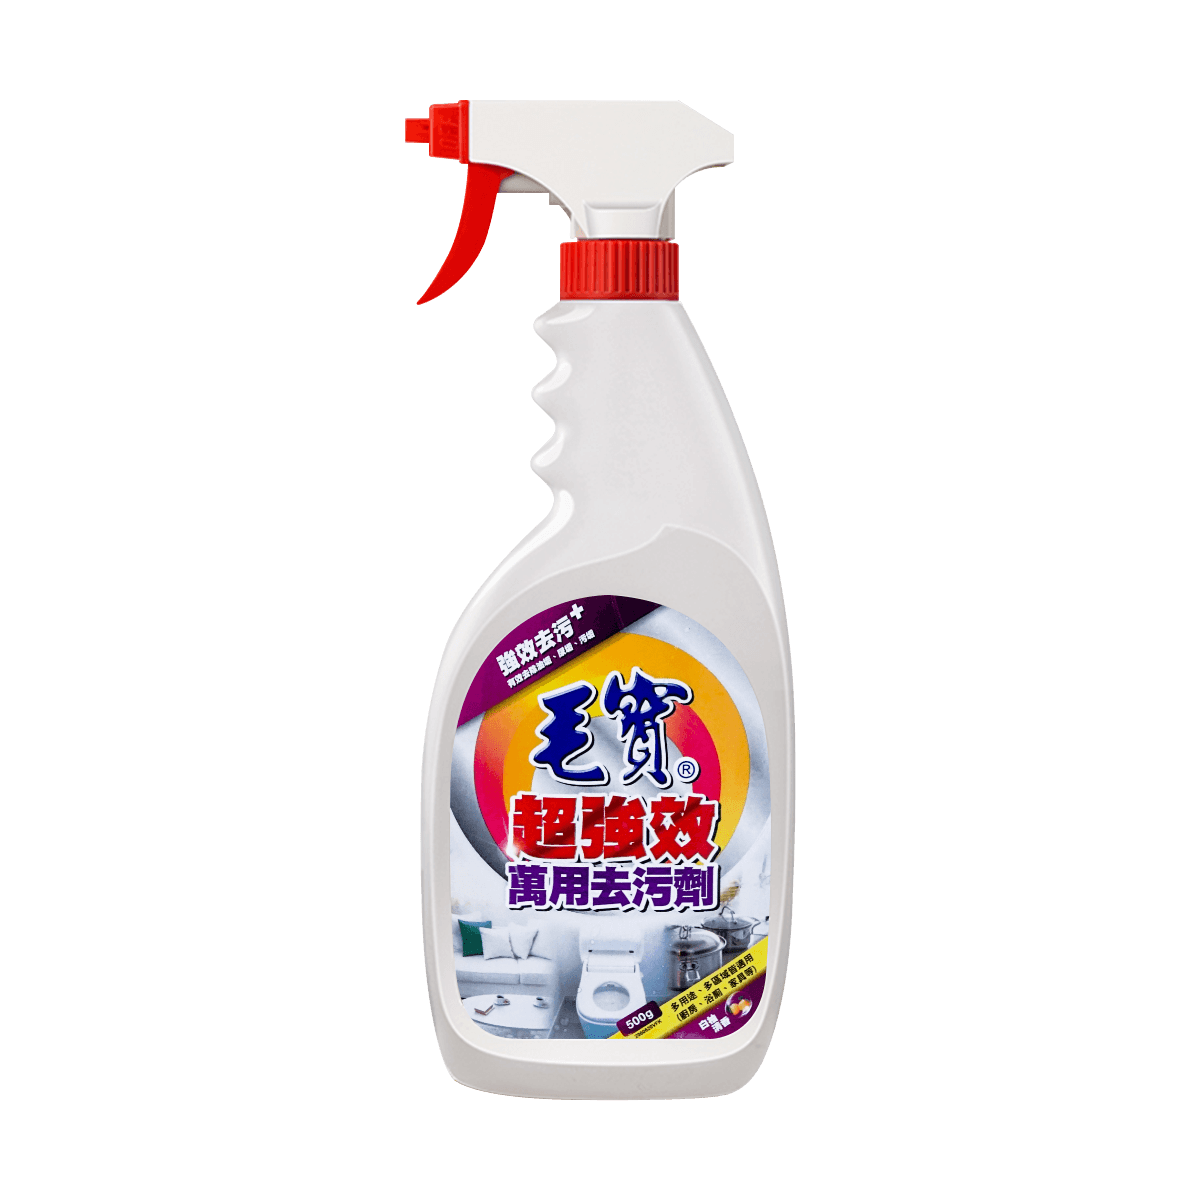 Yamibuy.com:Customer reviews:Maobao Extra Strength All-Purpose Cleaner 500g